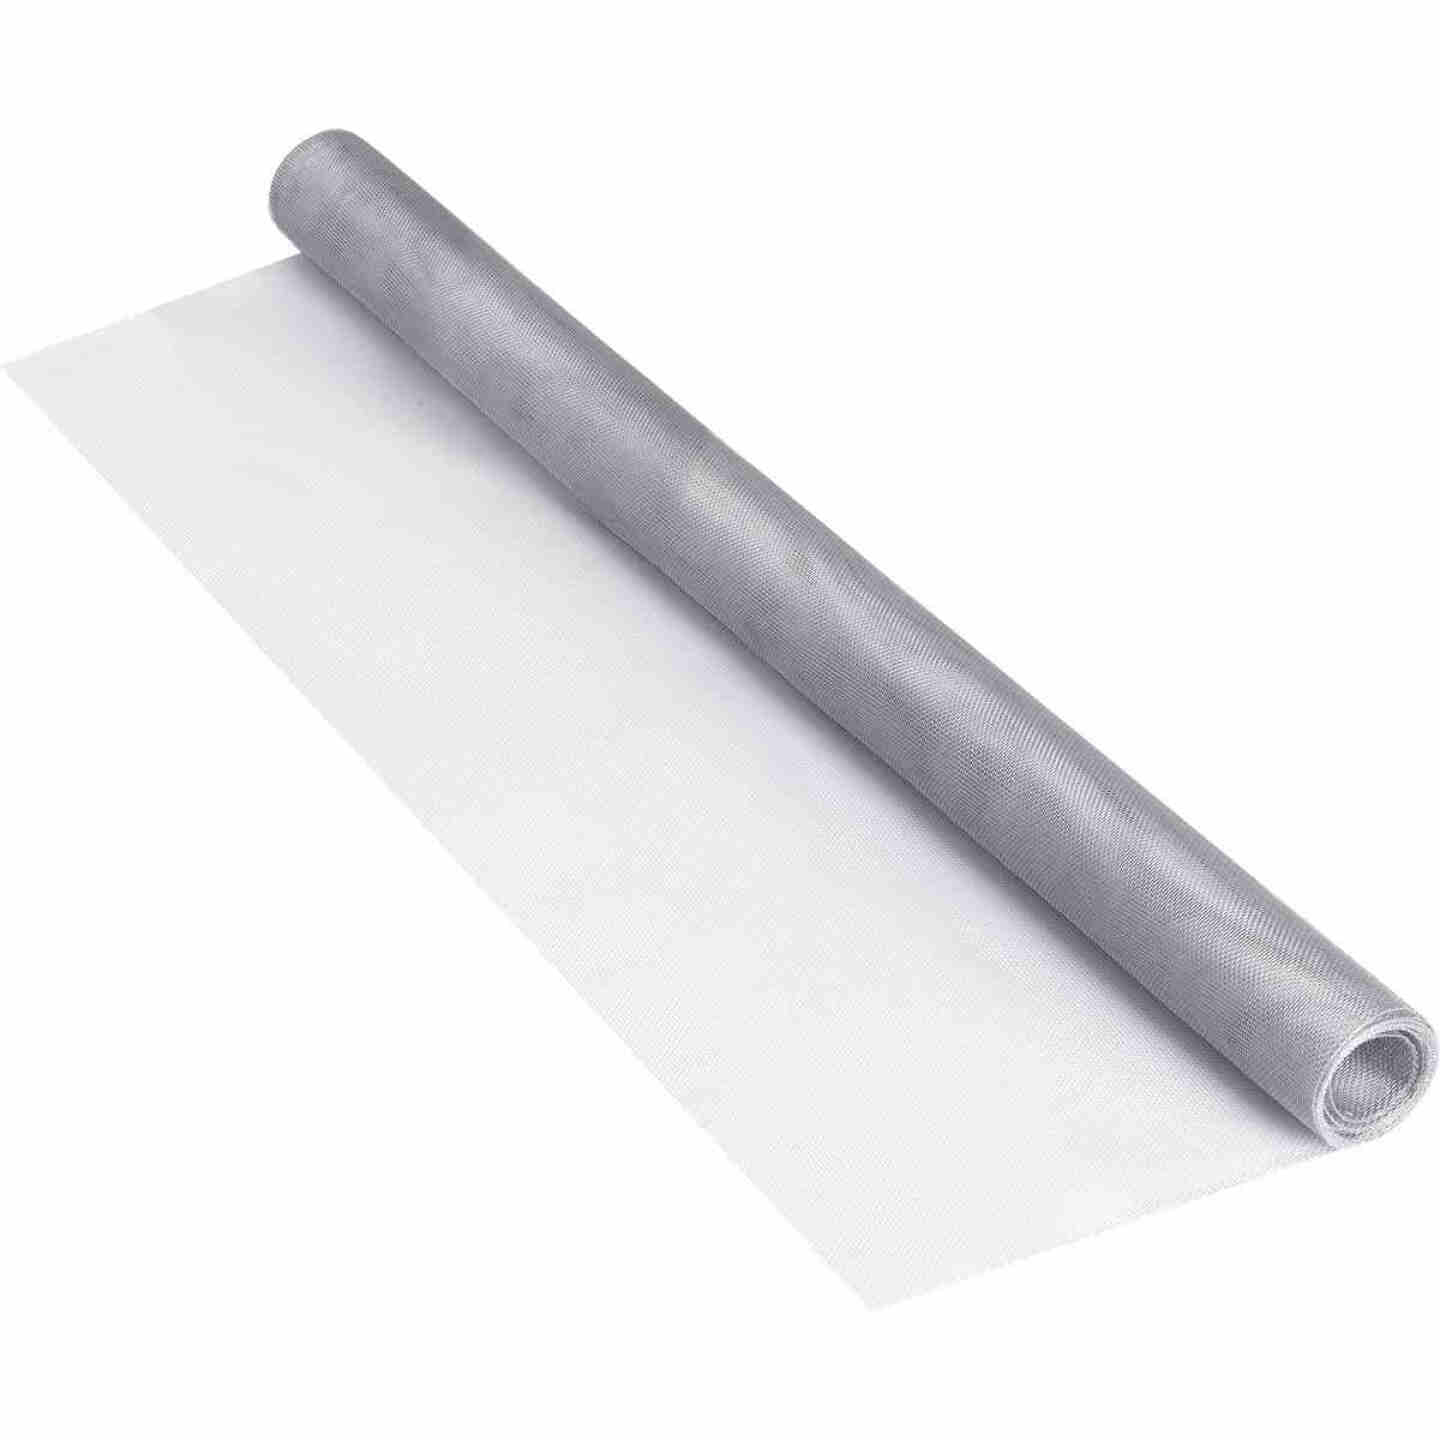 Phifer 48 In. x 84 In. Brite Aluminum Screen Ready Rolls Image 3